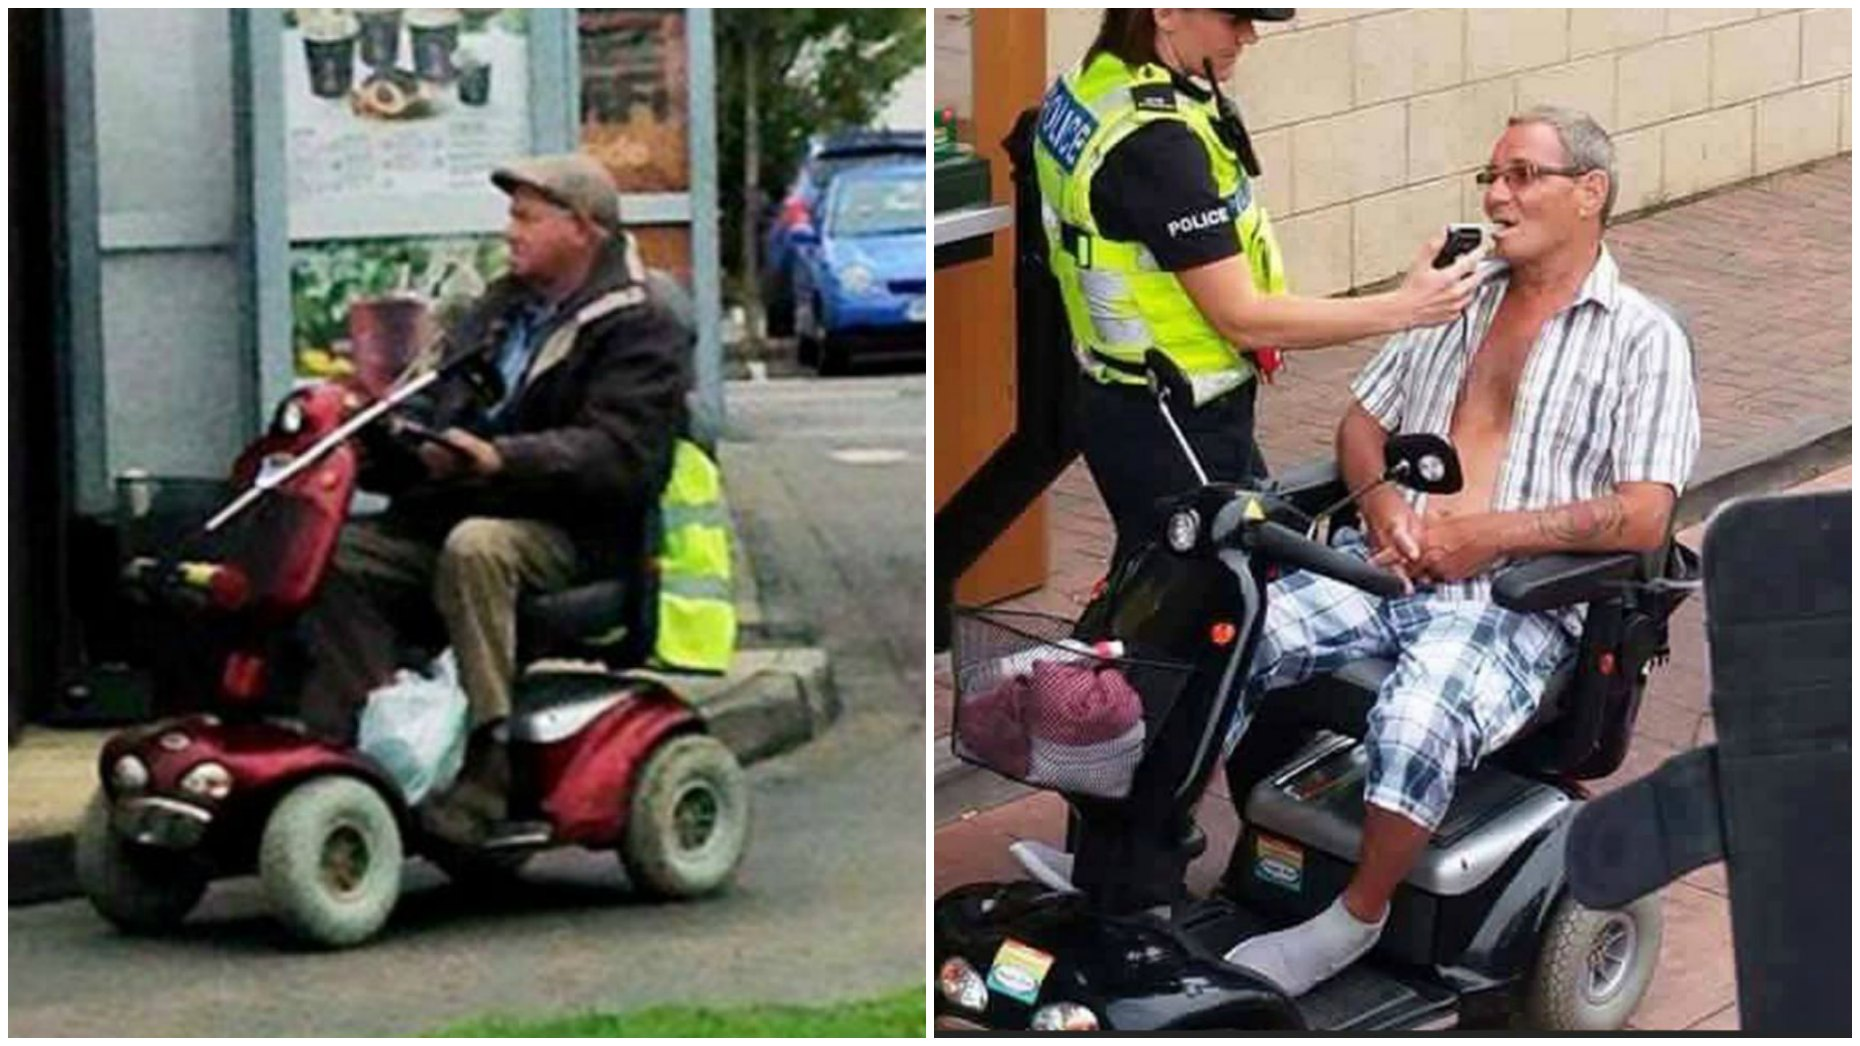 Same scooter, but different service: (L) Man being served at a McDonald's drive-thru on a scooter in 2015 in Wiltshire. Photo: Jonathon Owens. (R) Man using a McDonald's drive-thru on a mobility scooter in 2016 in Skegness but has been denied service and arrested. Photo: Emma Aque